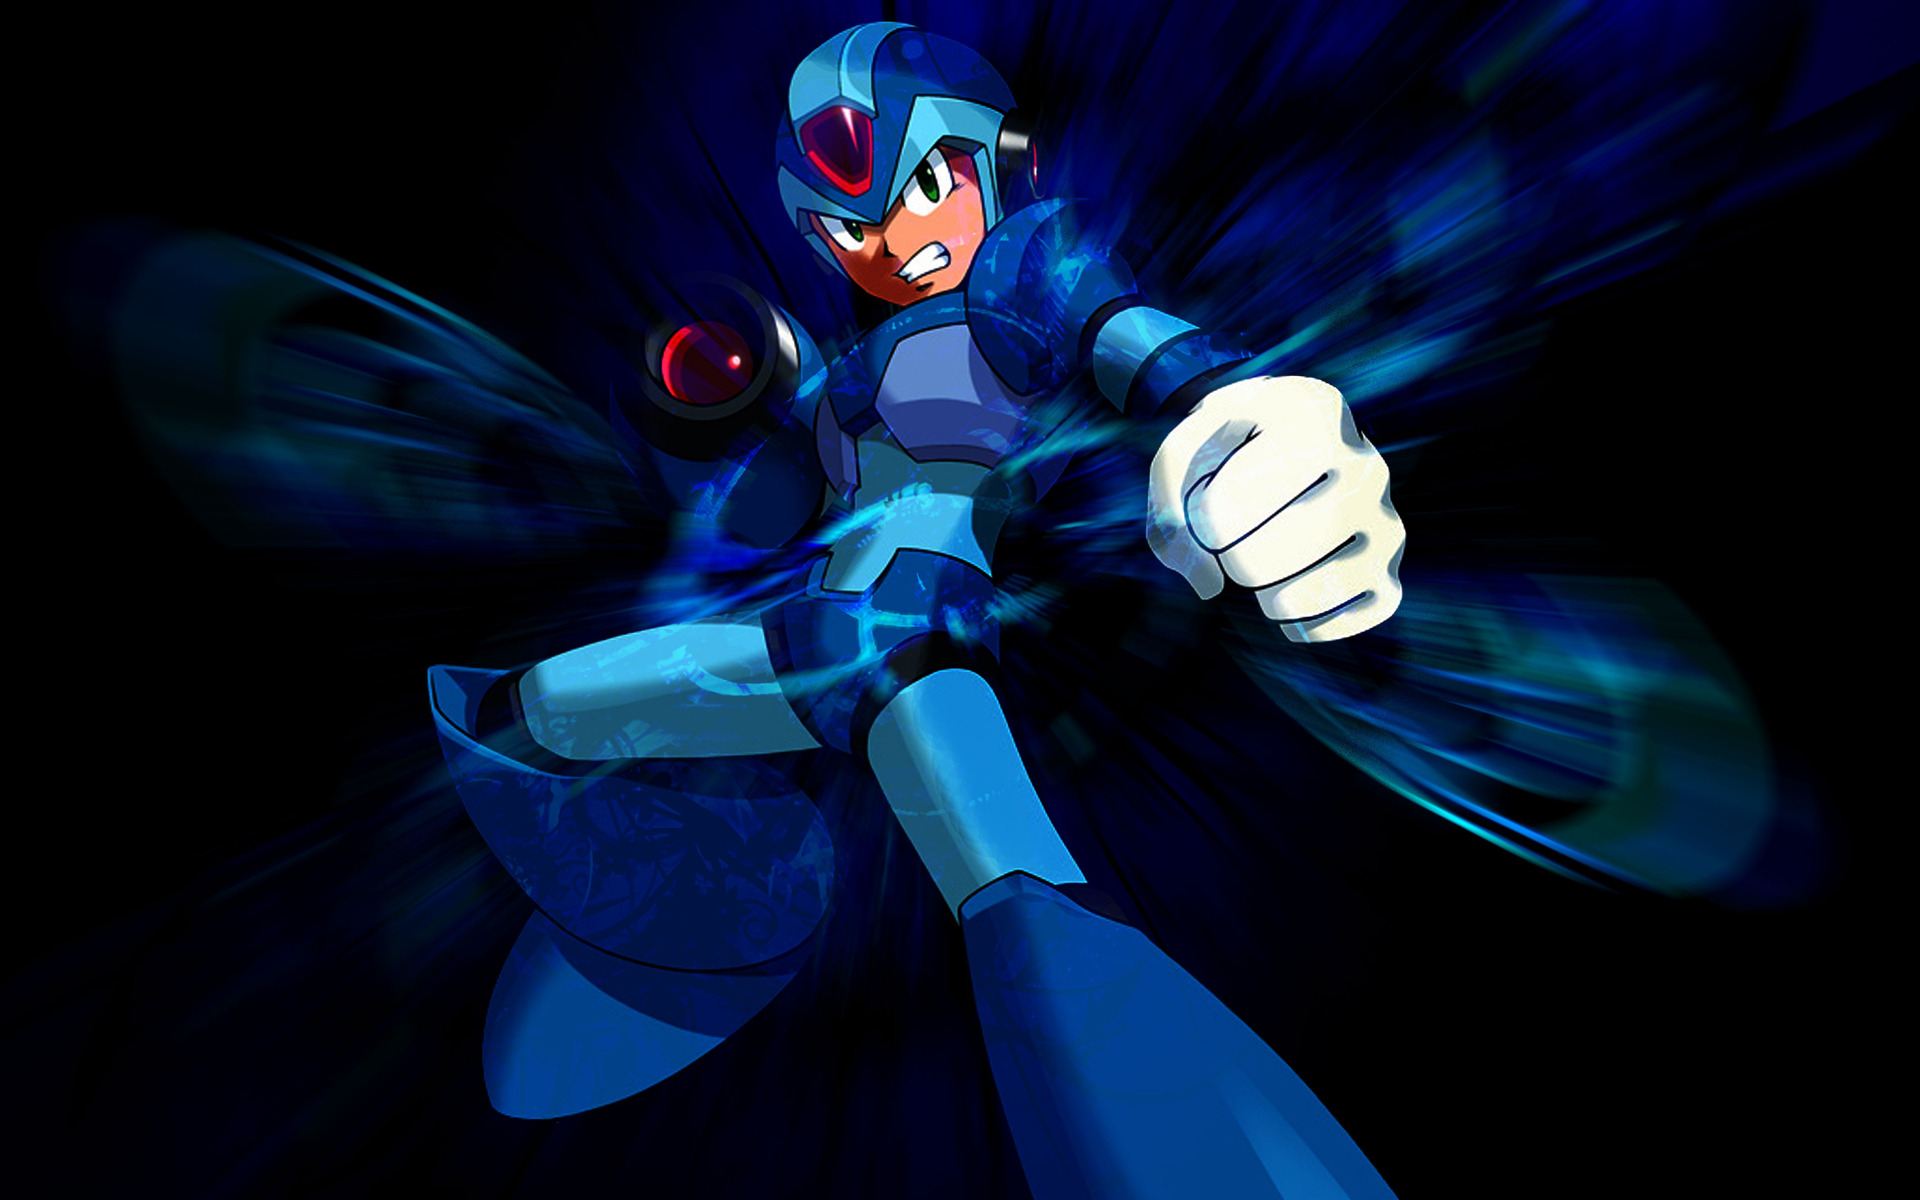 Image result for X megaman x8 wallpaper